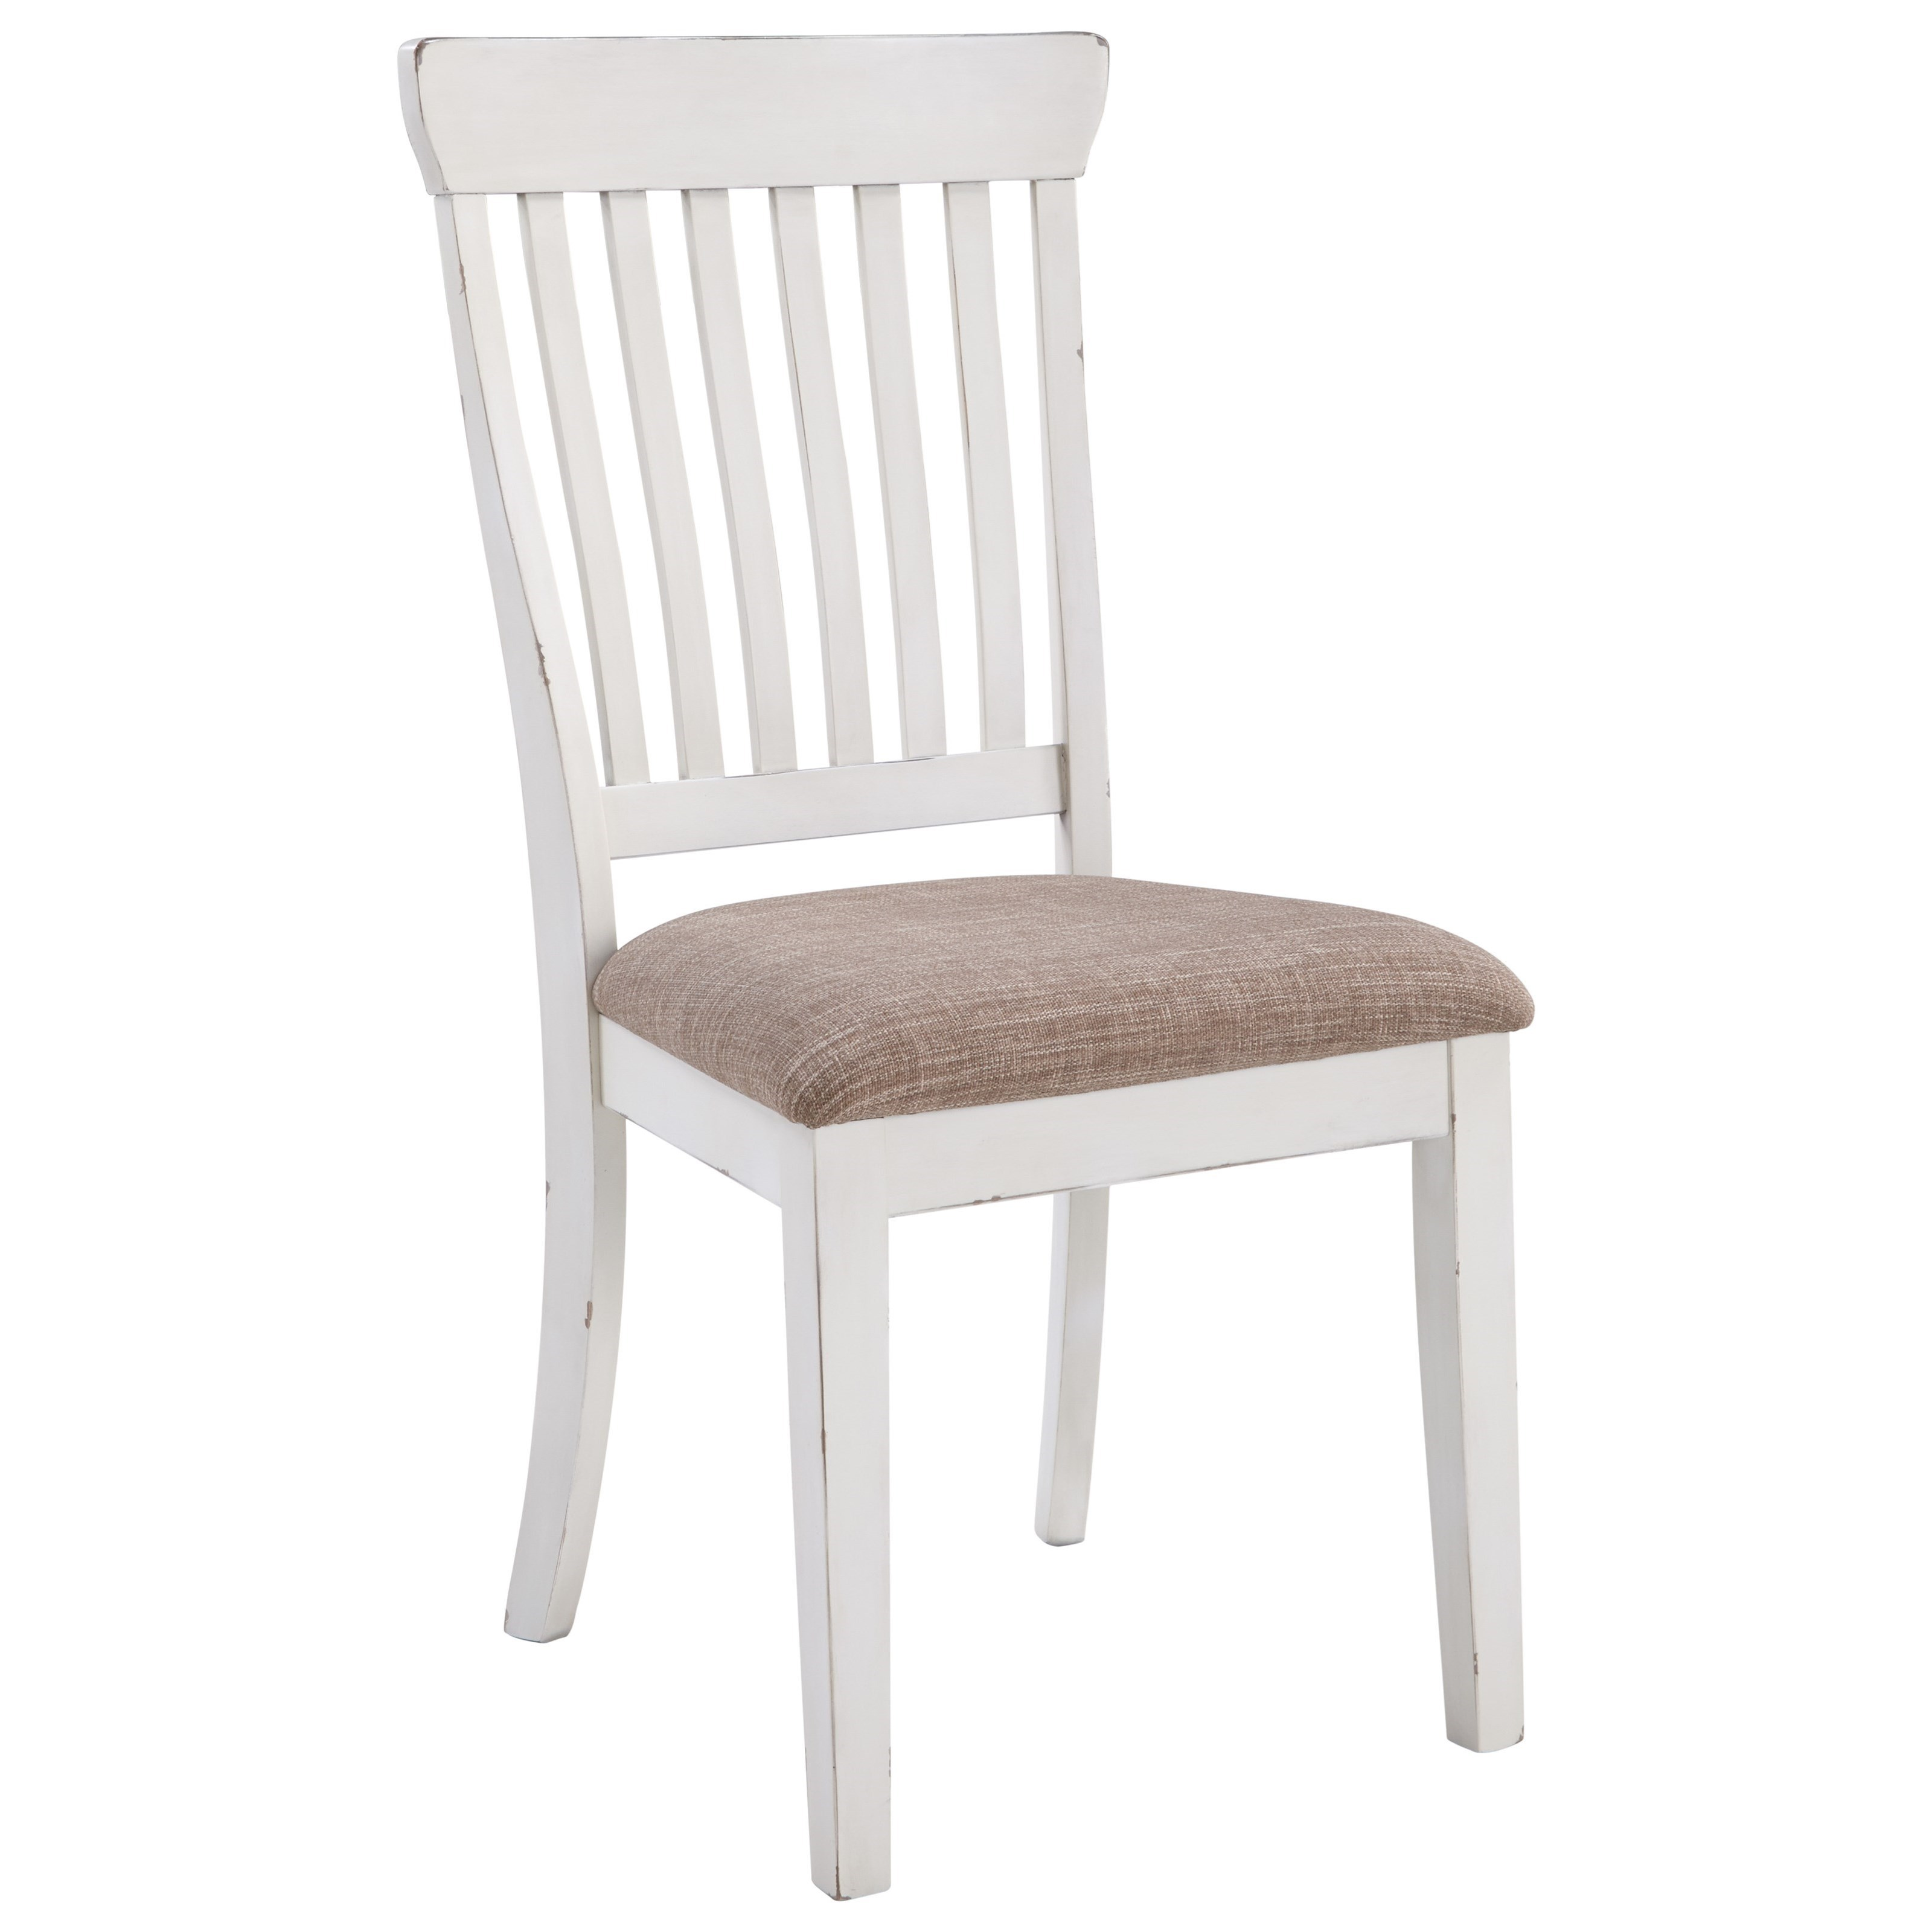 Danbeck Dining Upholstered Side Chair by Signature Design by Ashley at Lapeer Furniture & Mattress Center